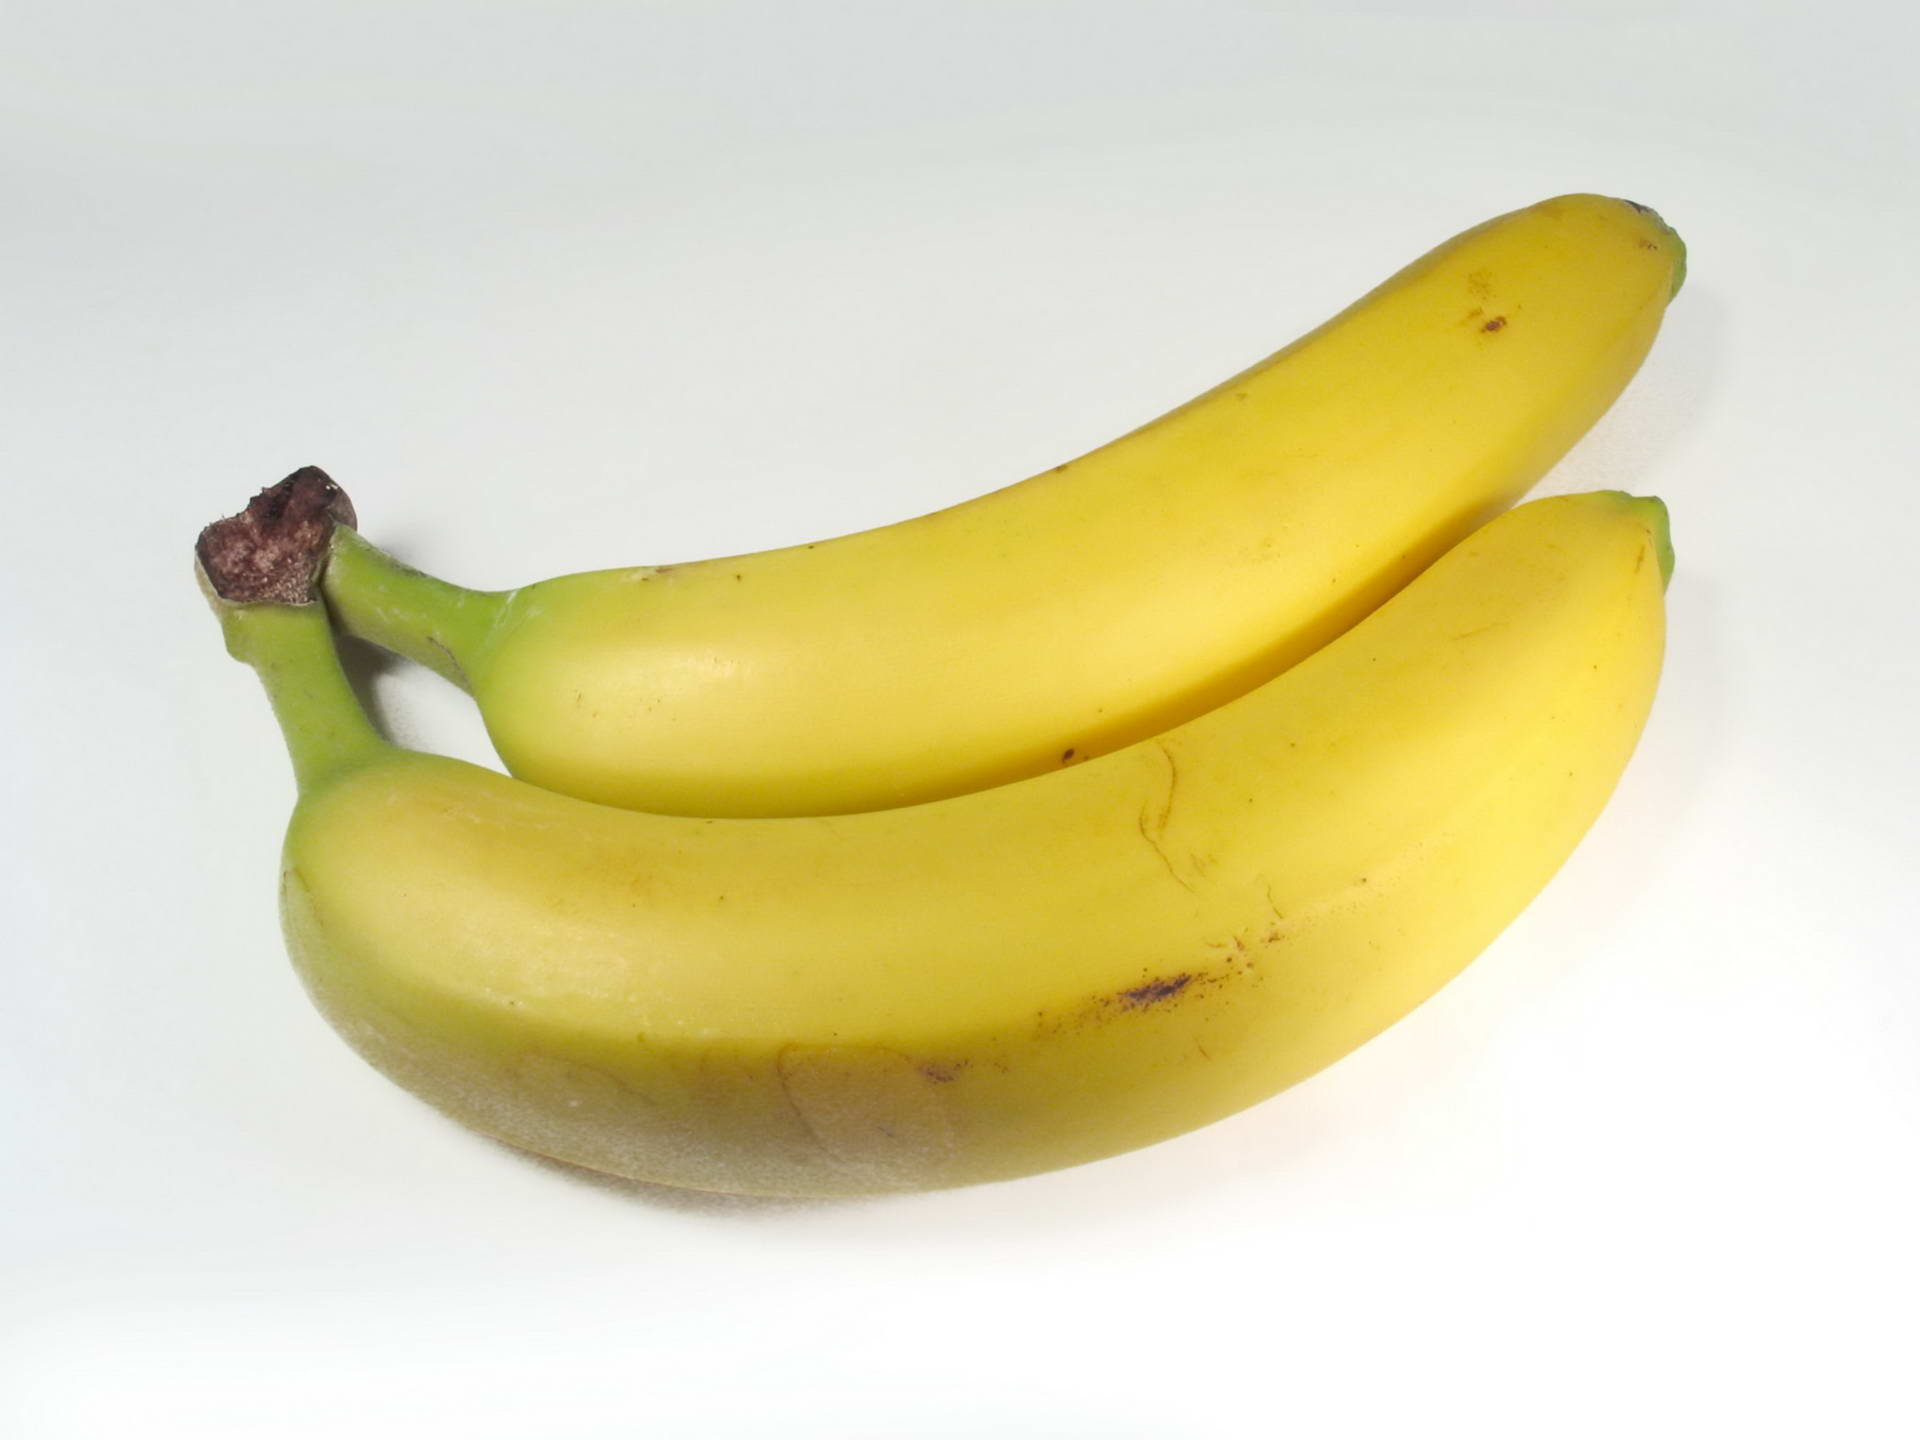 Download hd 1920x1440 Banana computer wallpaper ID:463166 for free